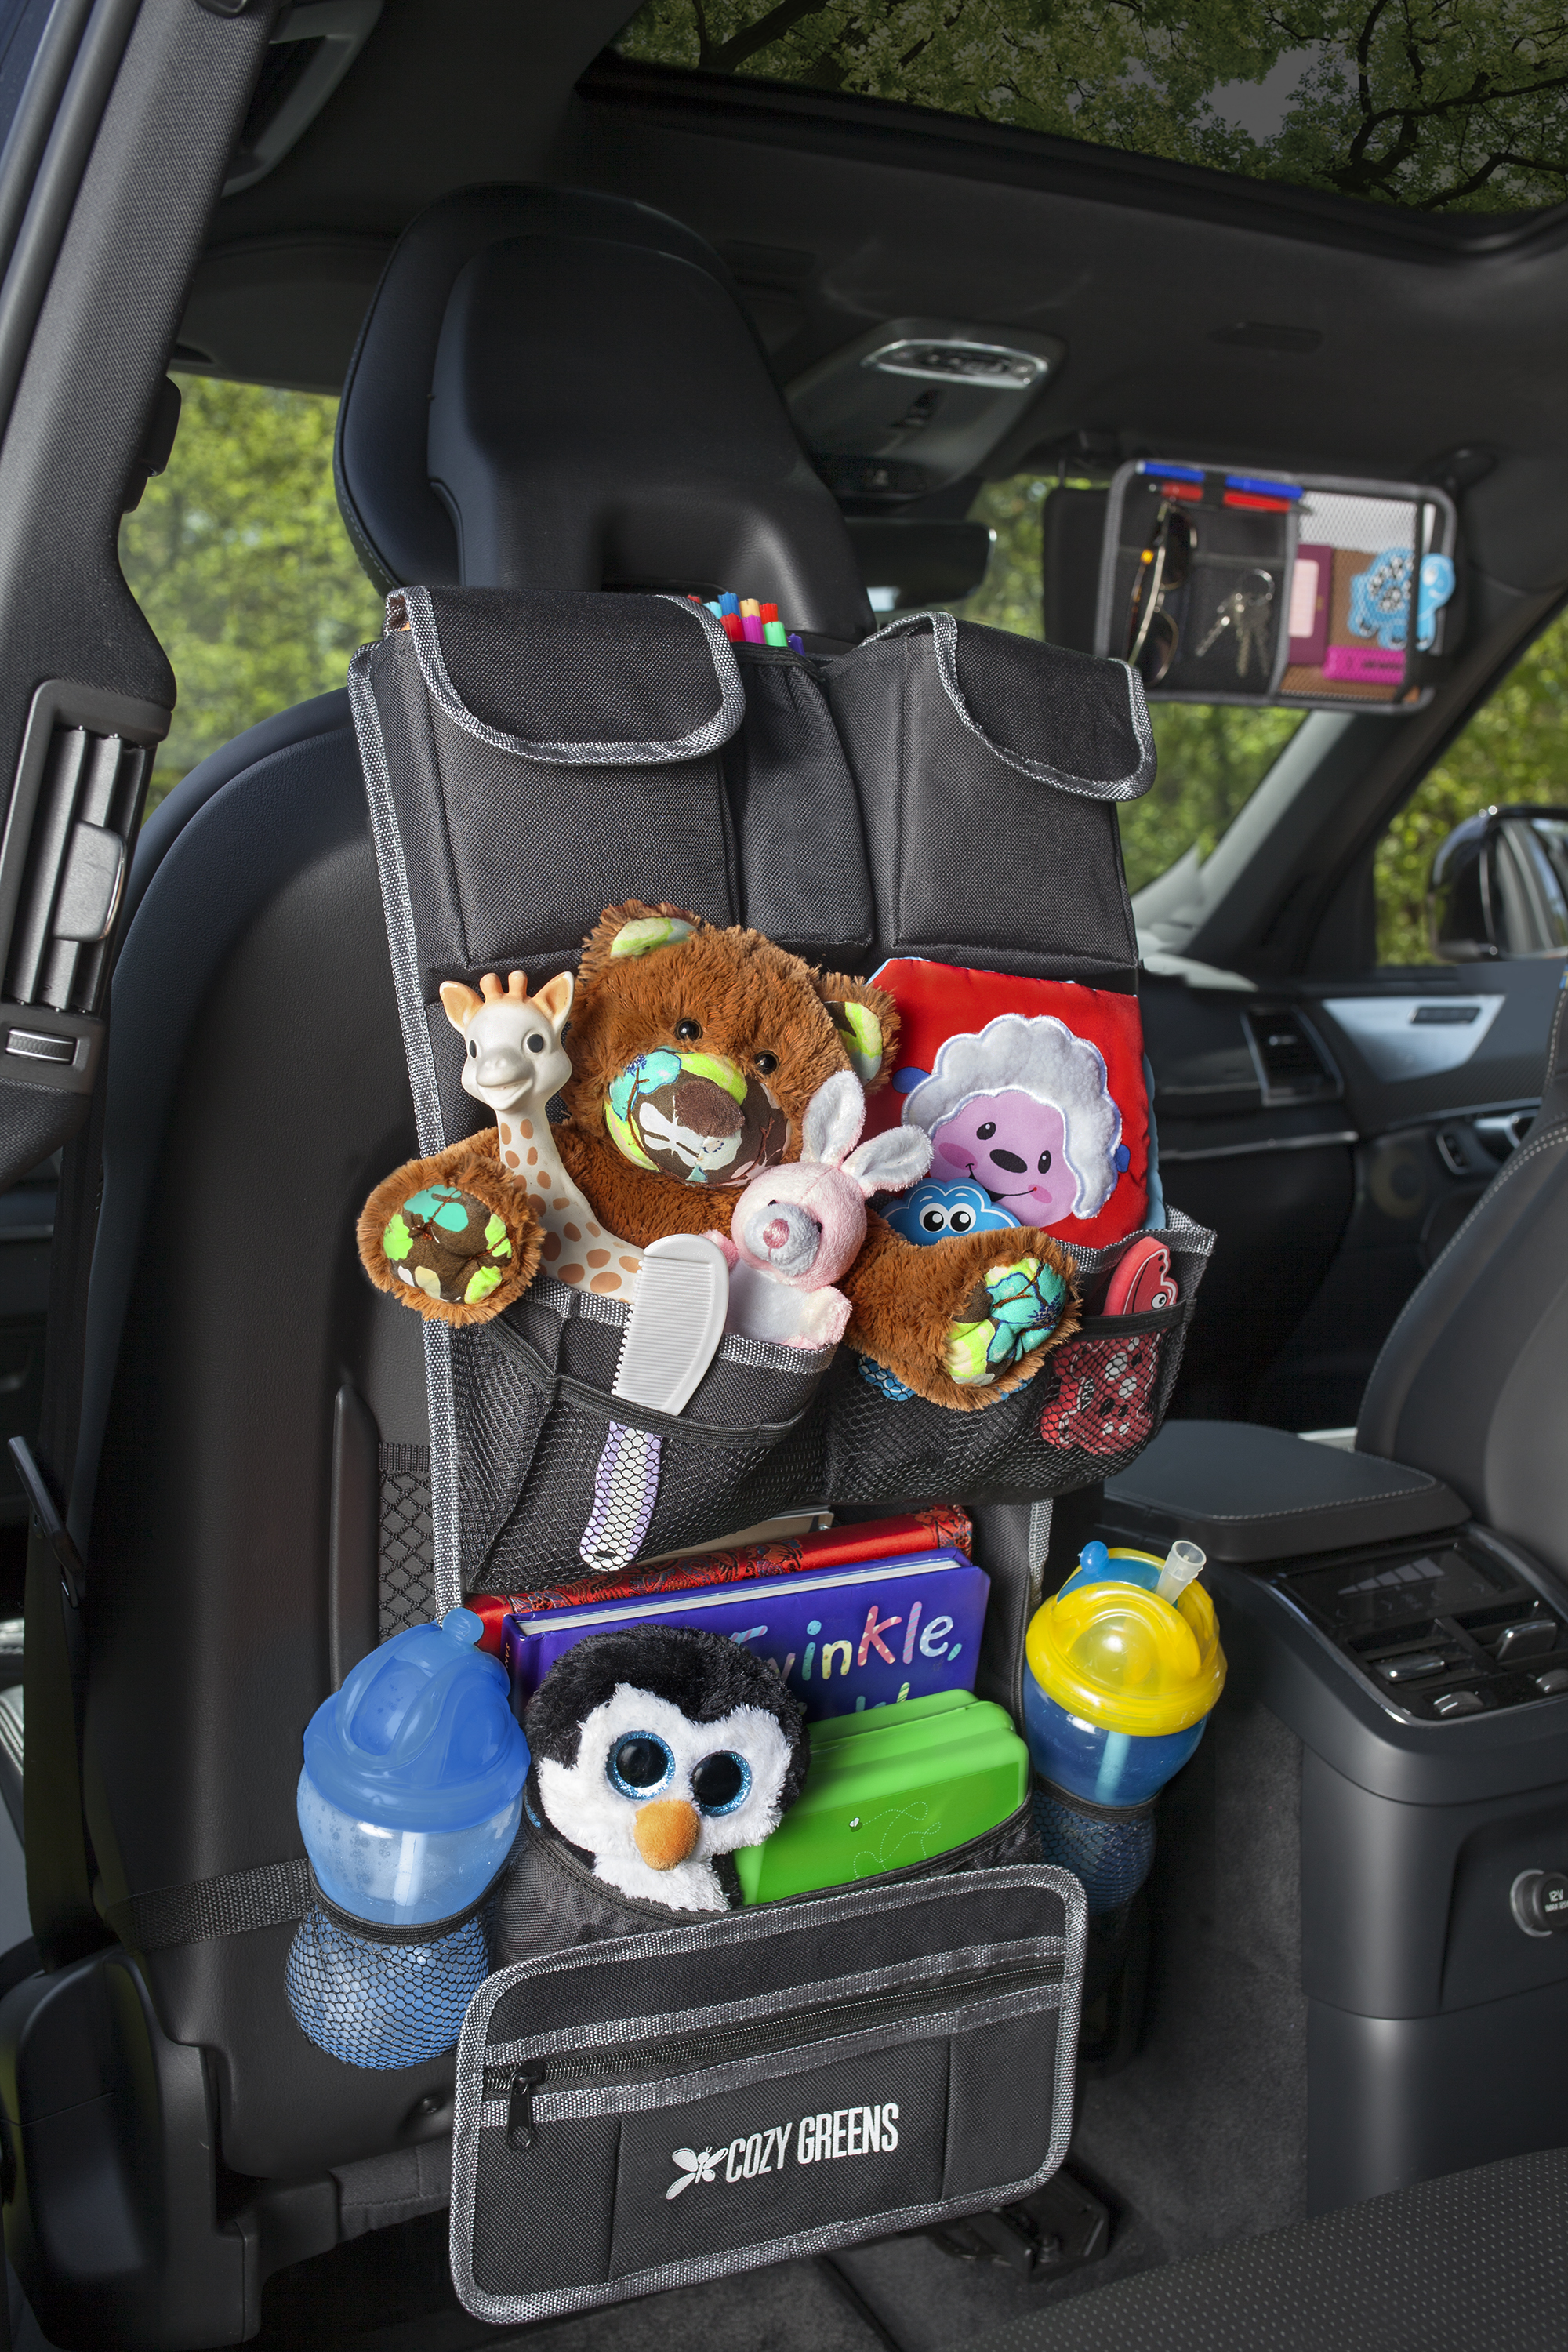 Back seat organizer gray cozygreens car organizer for back seat eco friendly strong kick mat protects backseat free visor organizer storage for toys travel accessories solutioingenieria Gallery